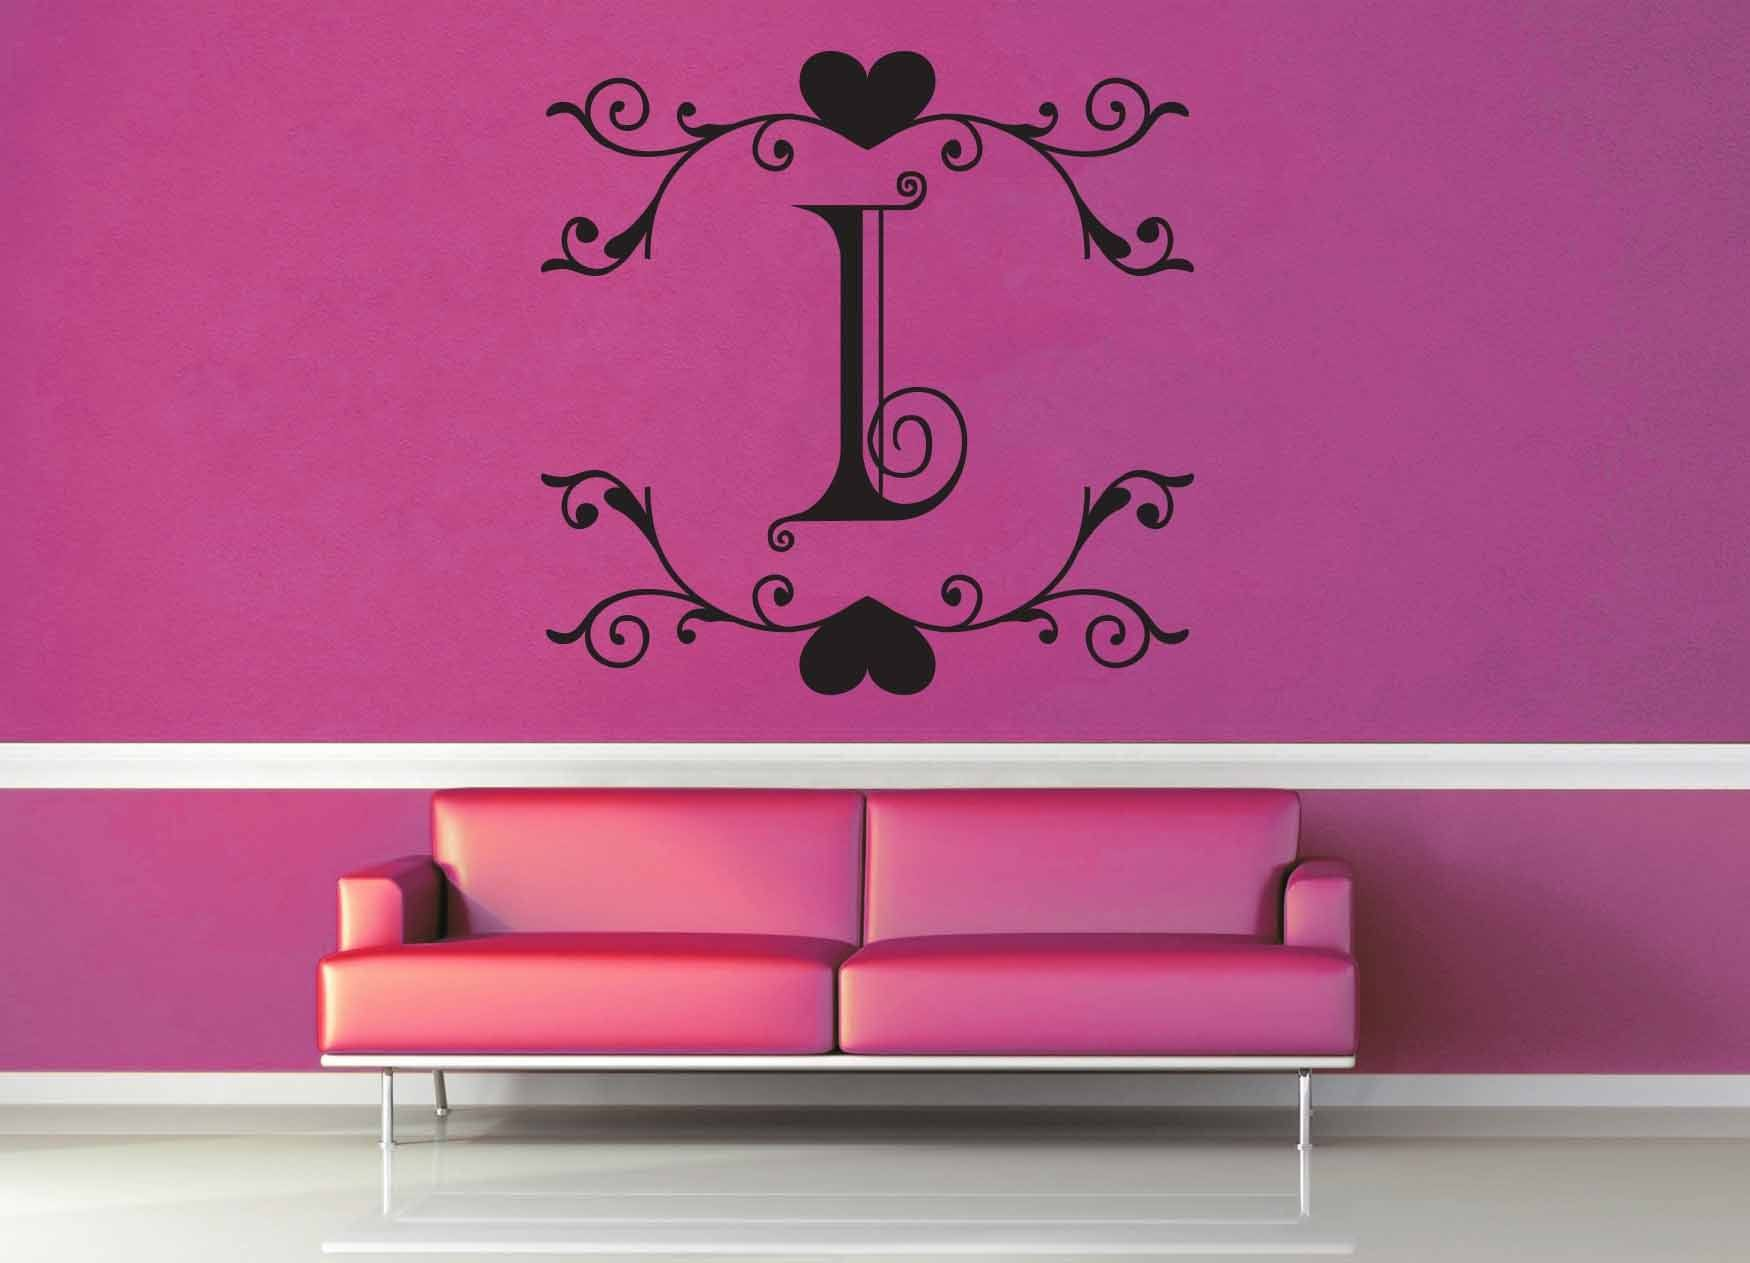 Fantasy Monogram - I - Wall Decal